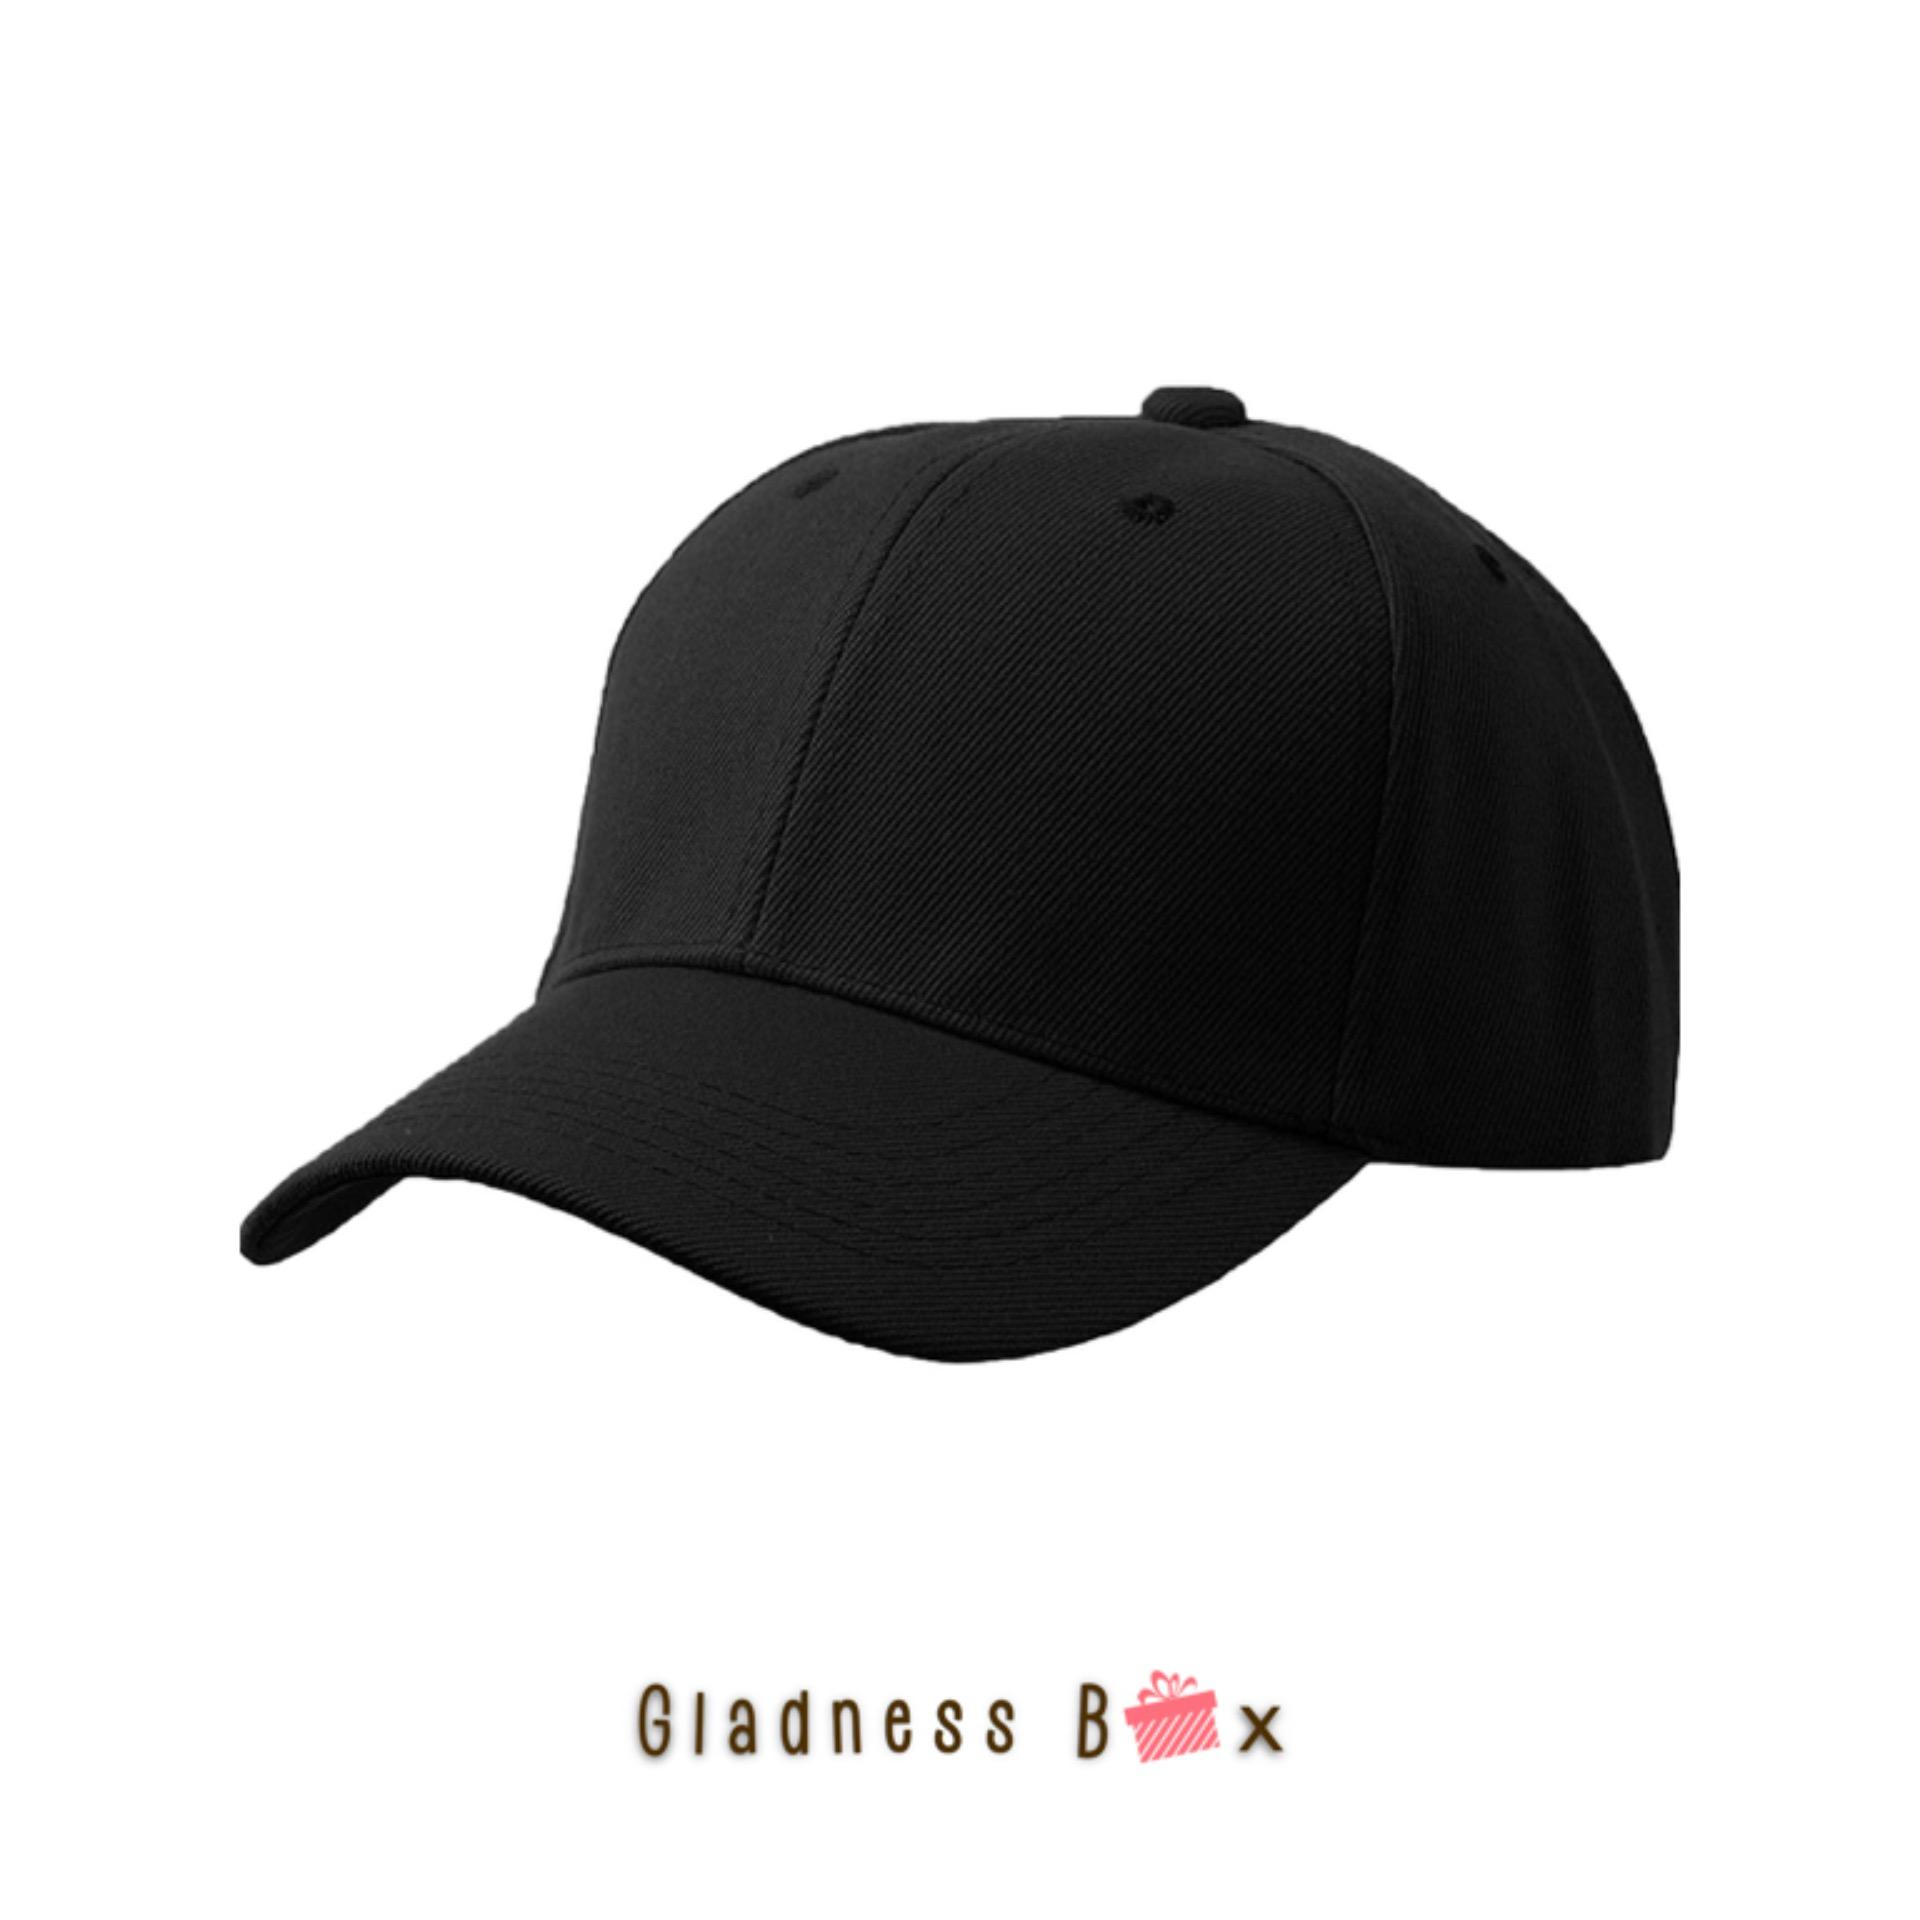 7ce6d1ba56d Gladness Box High Quality Plain Baseball Cap for Men Women Unisex